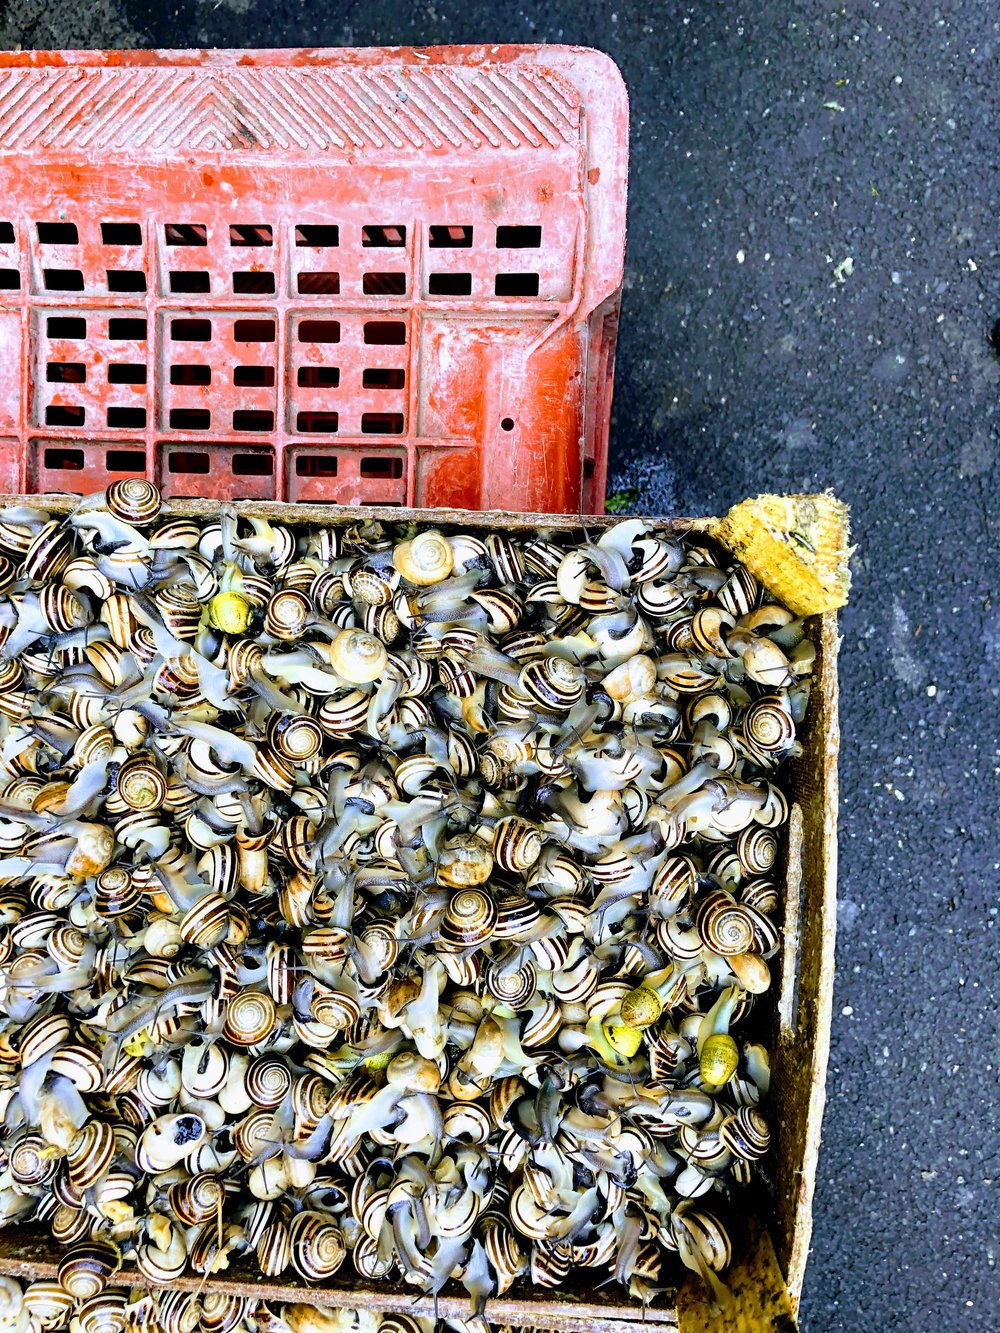 Live snails at the fish market in Catania, Sicily